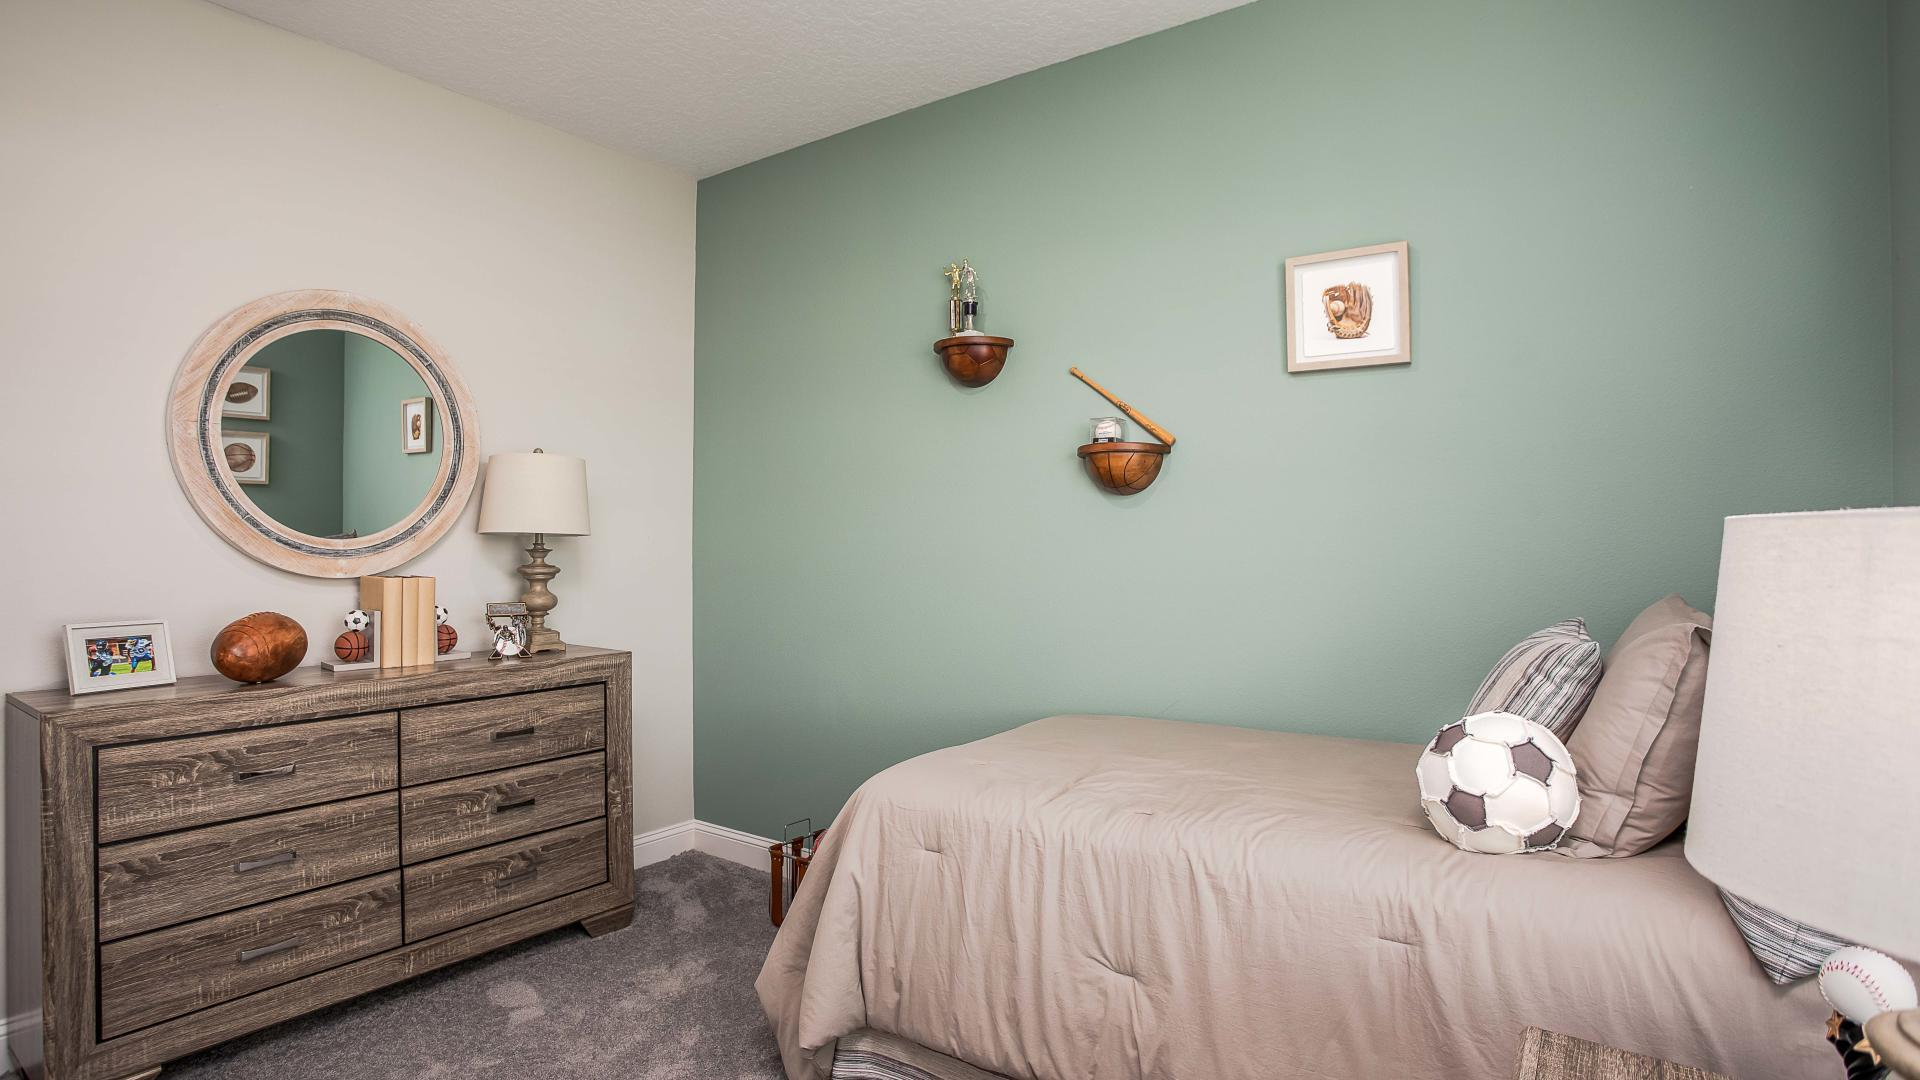 Bedroom featured in the Miramar By Maronda Homes in Indian River County, FL